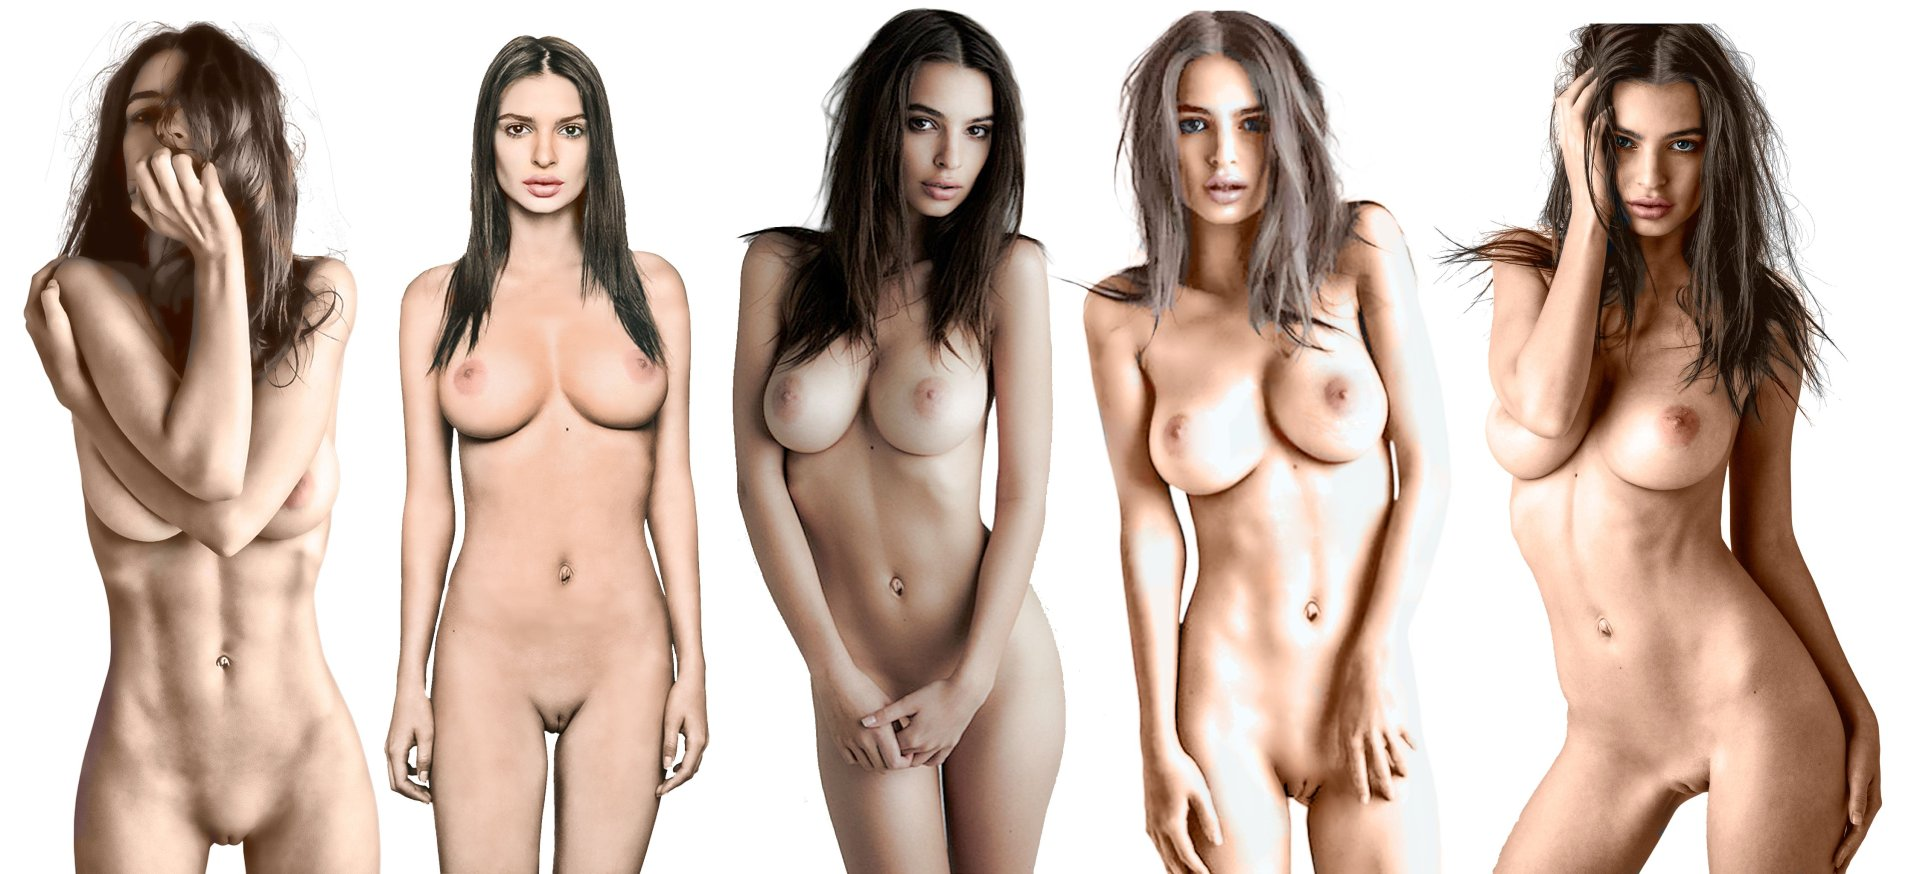 American Actress And Model Emily Ratajkowski Naked Photos Leaked